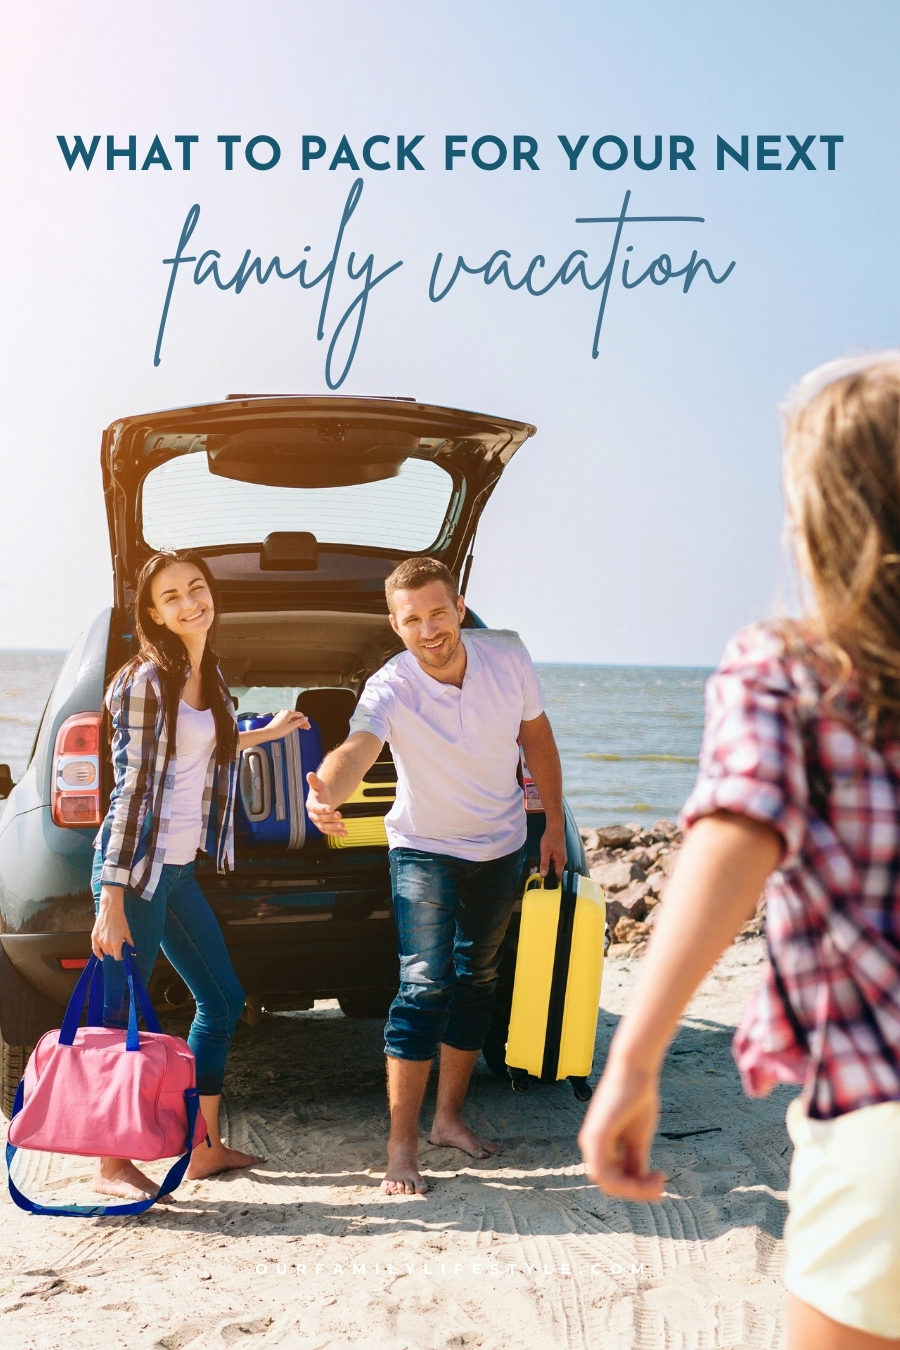 What To Pack For Your Next Family Vacation